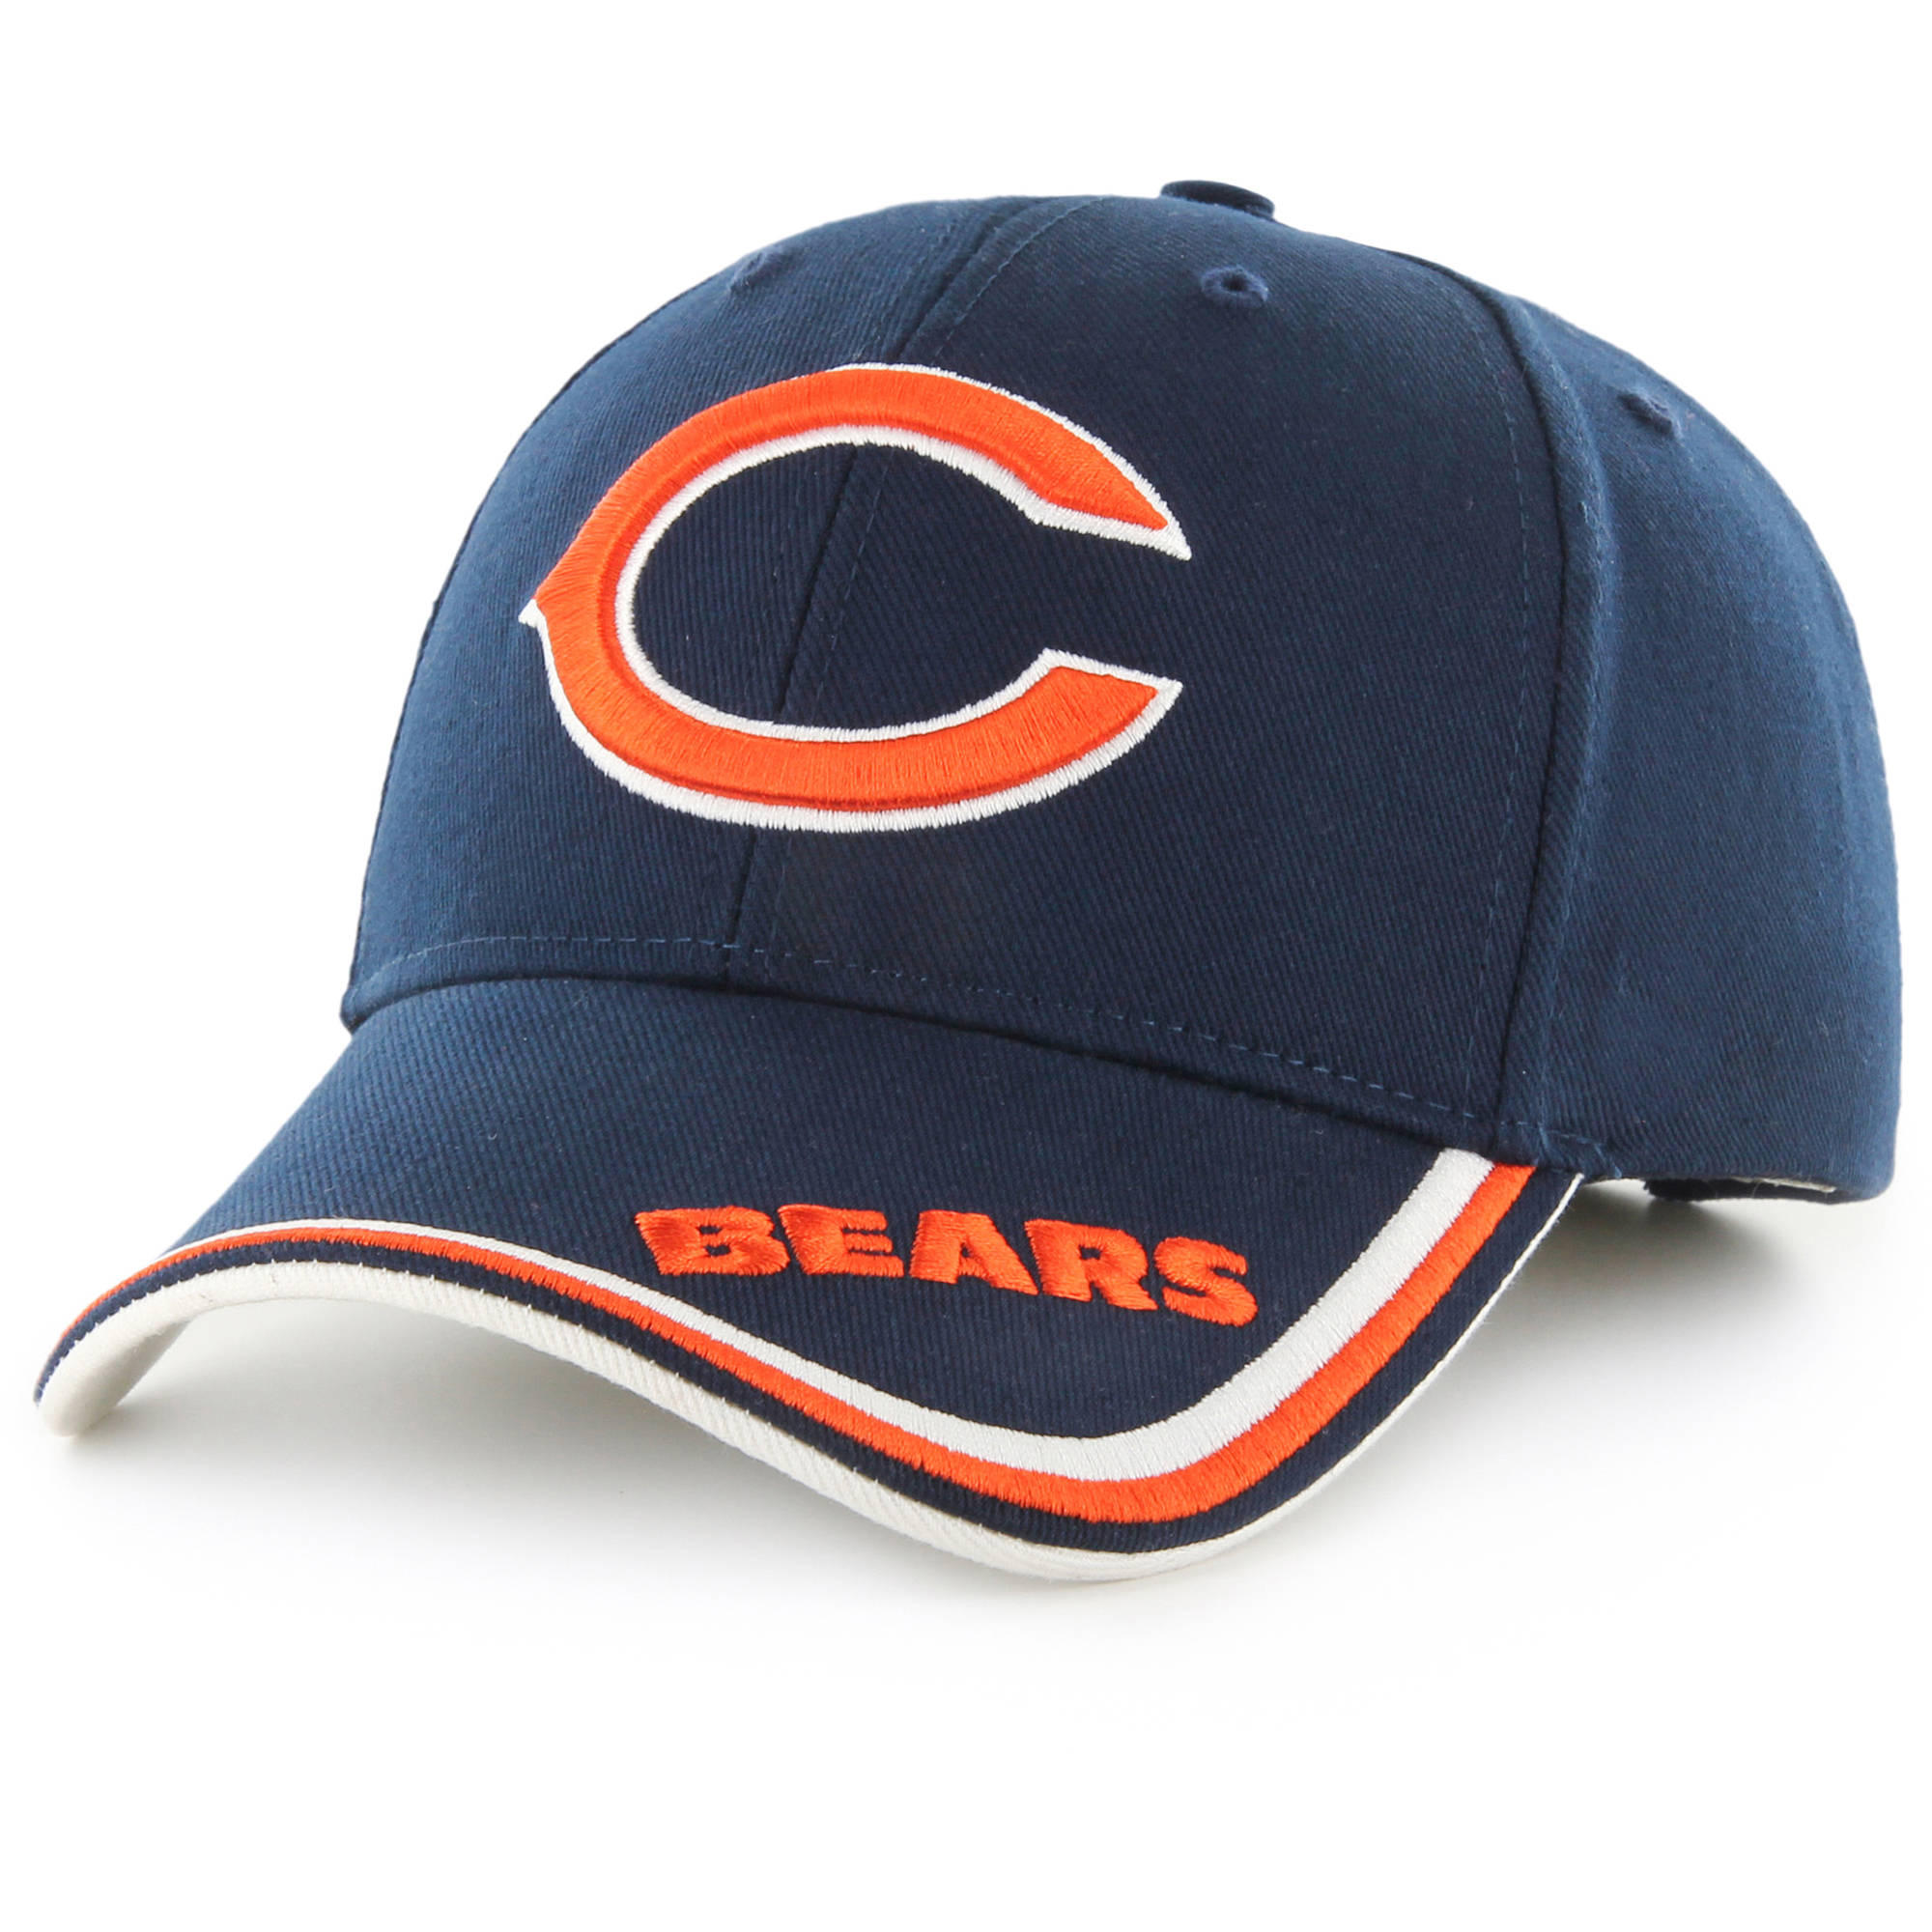 54198f01062 ... stocking cap hat 1734624206 bab17 13c68  sweden product image nfl  chicago bears forest cap f91cc 6f440